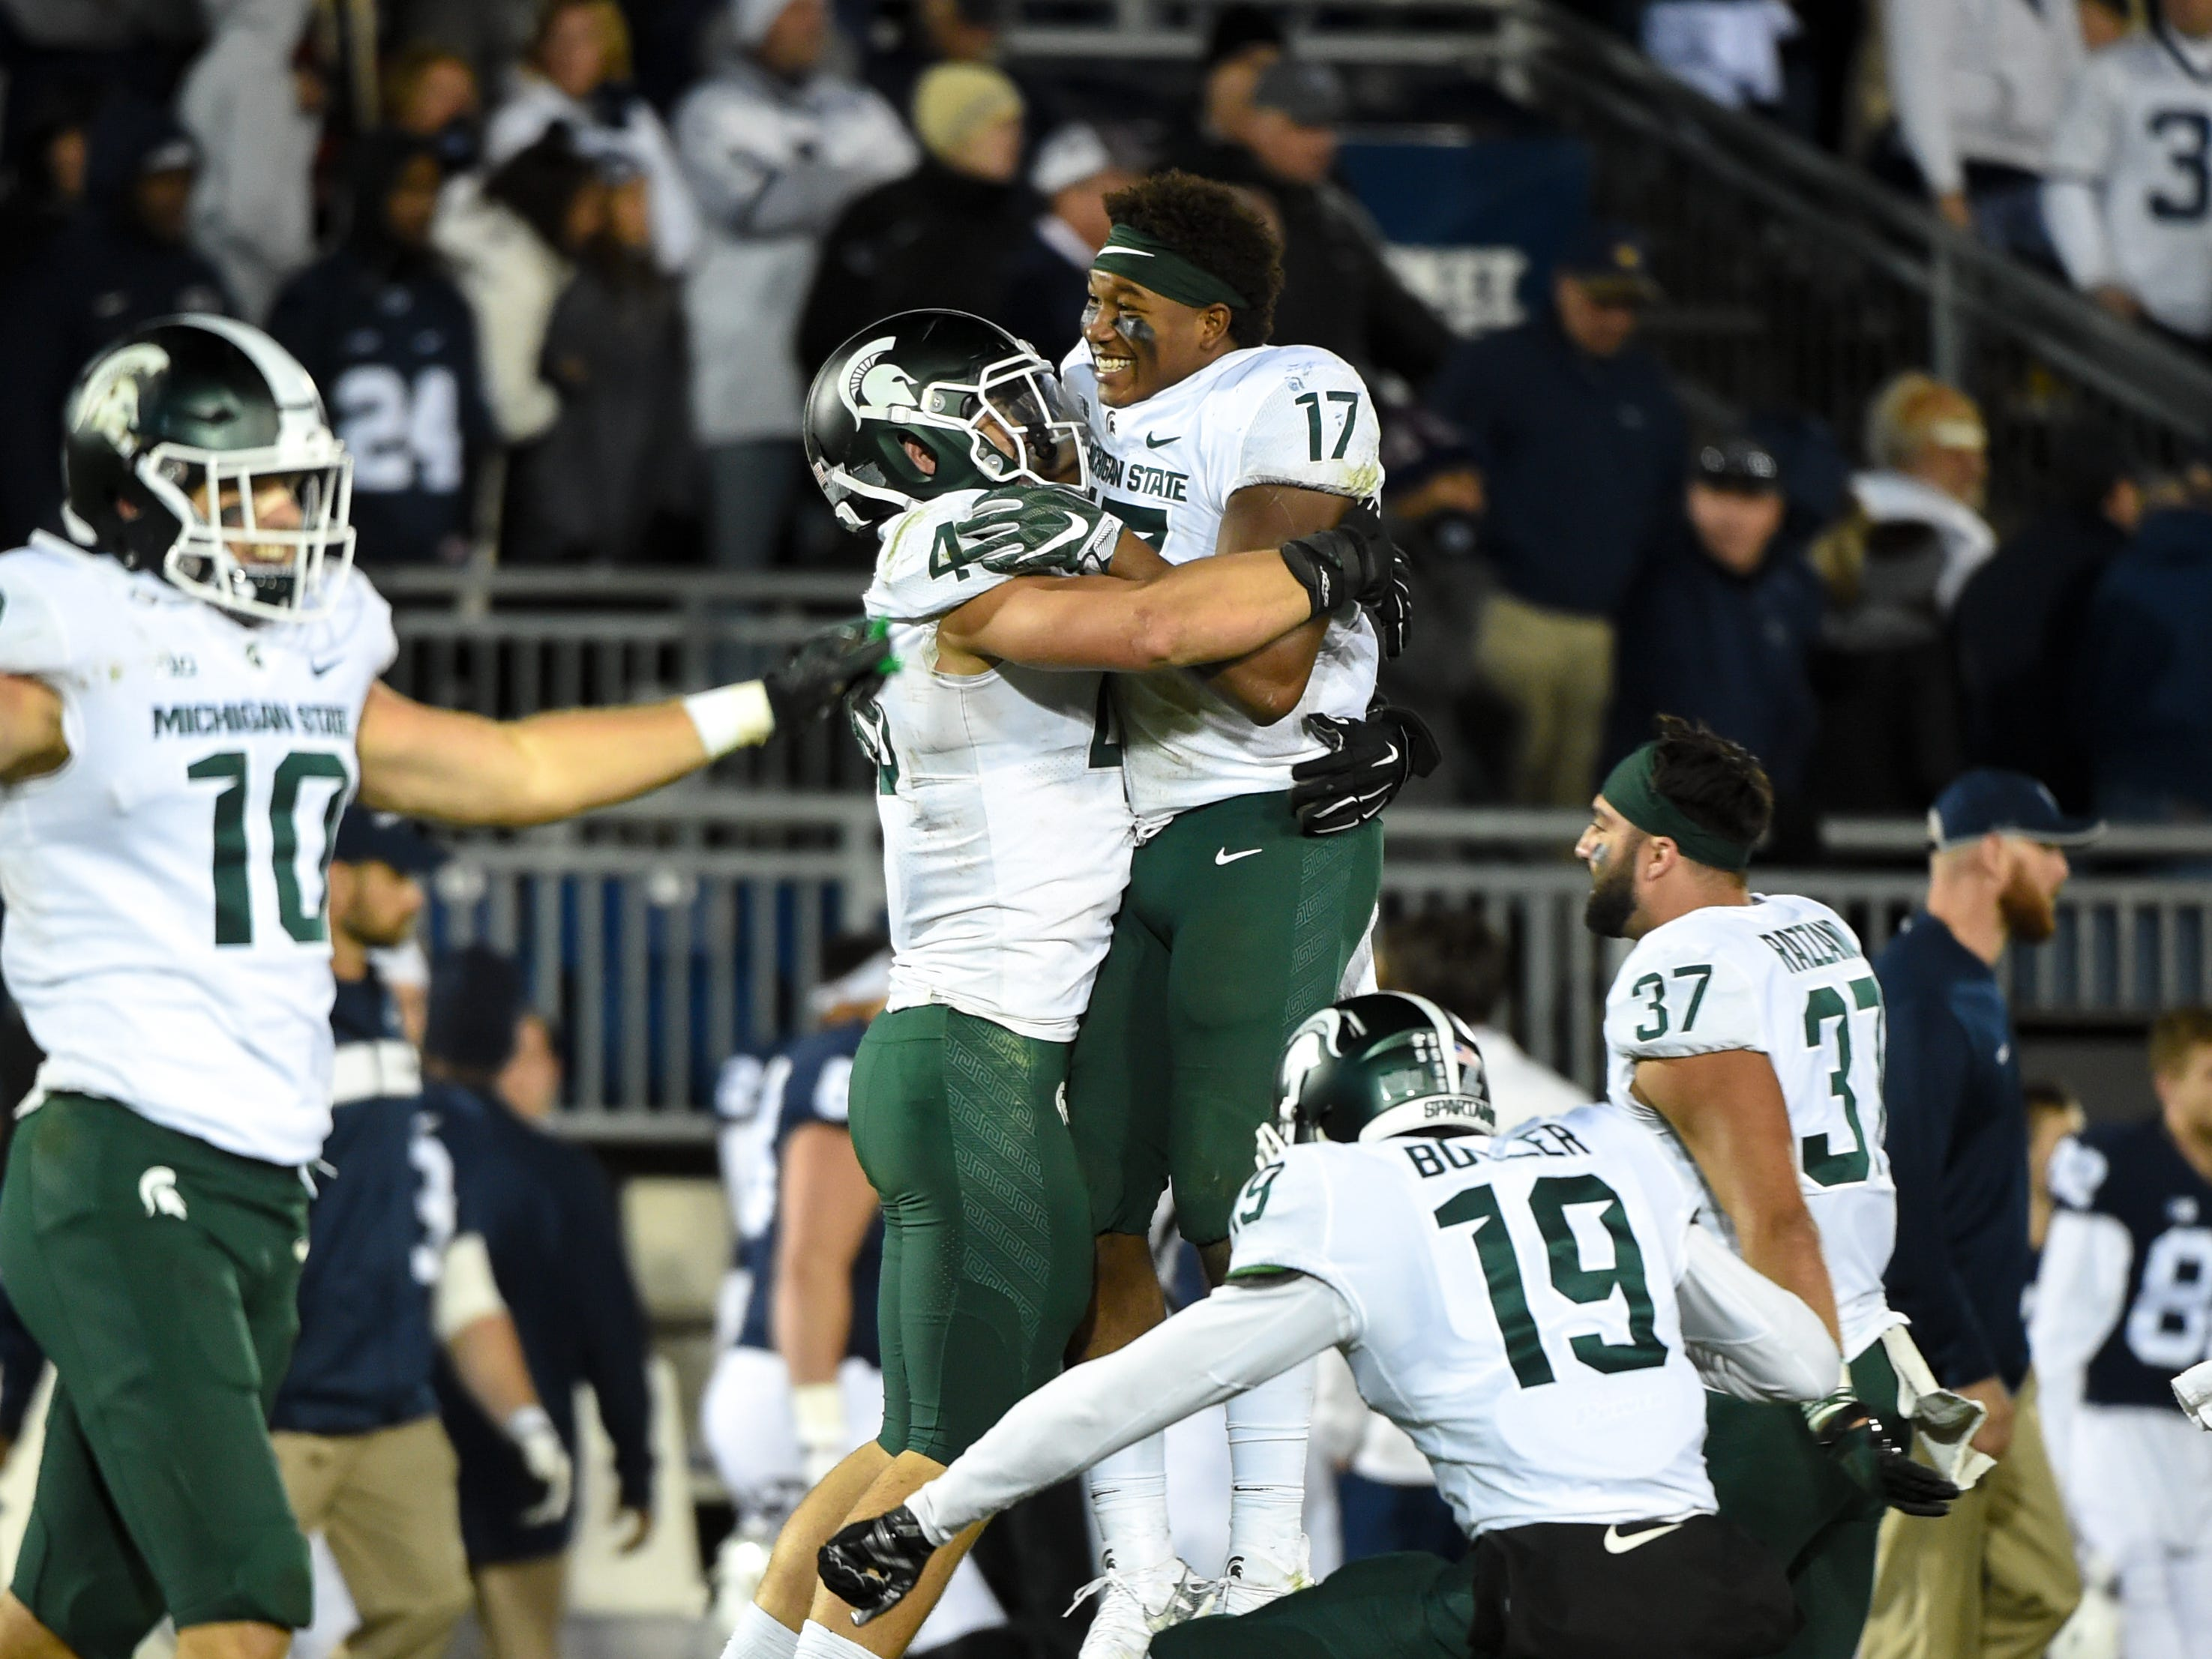 Michigan State celebrates a hard fought 17-21 victory over Penn State, October 13, 2018.